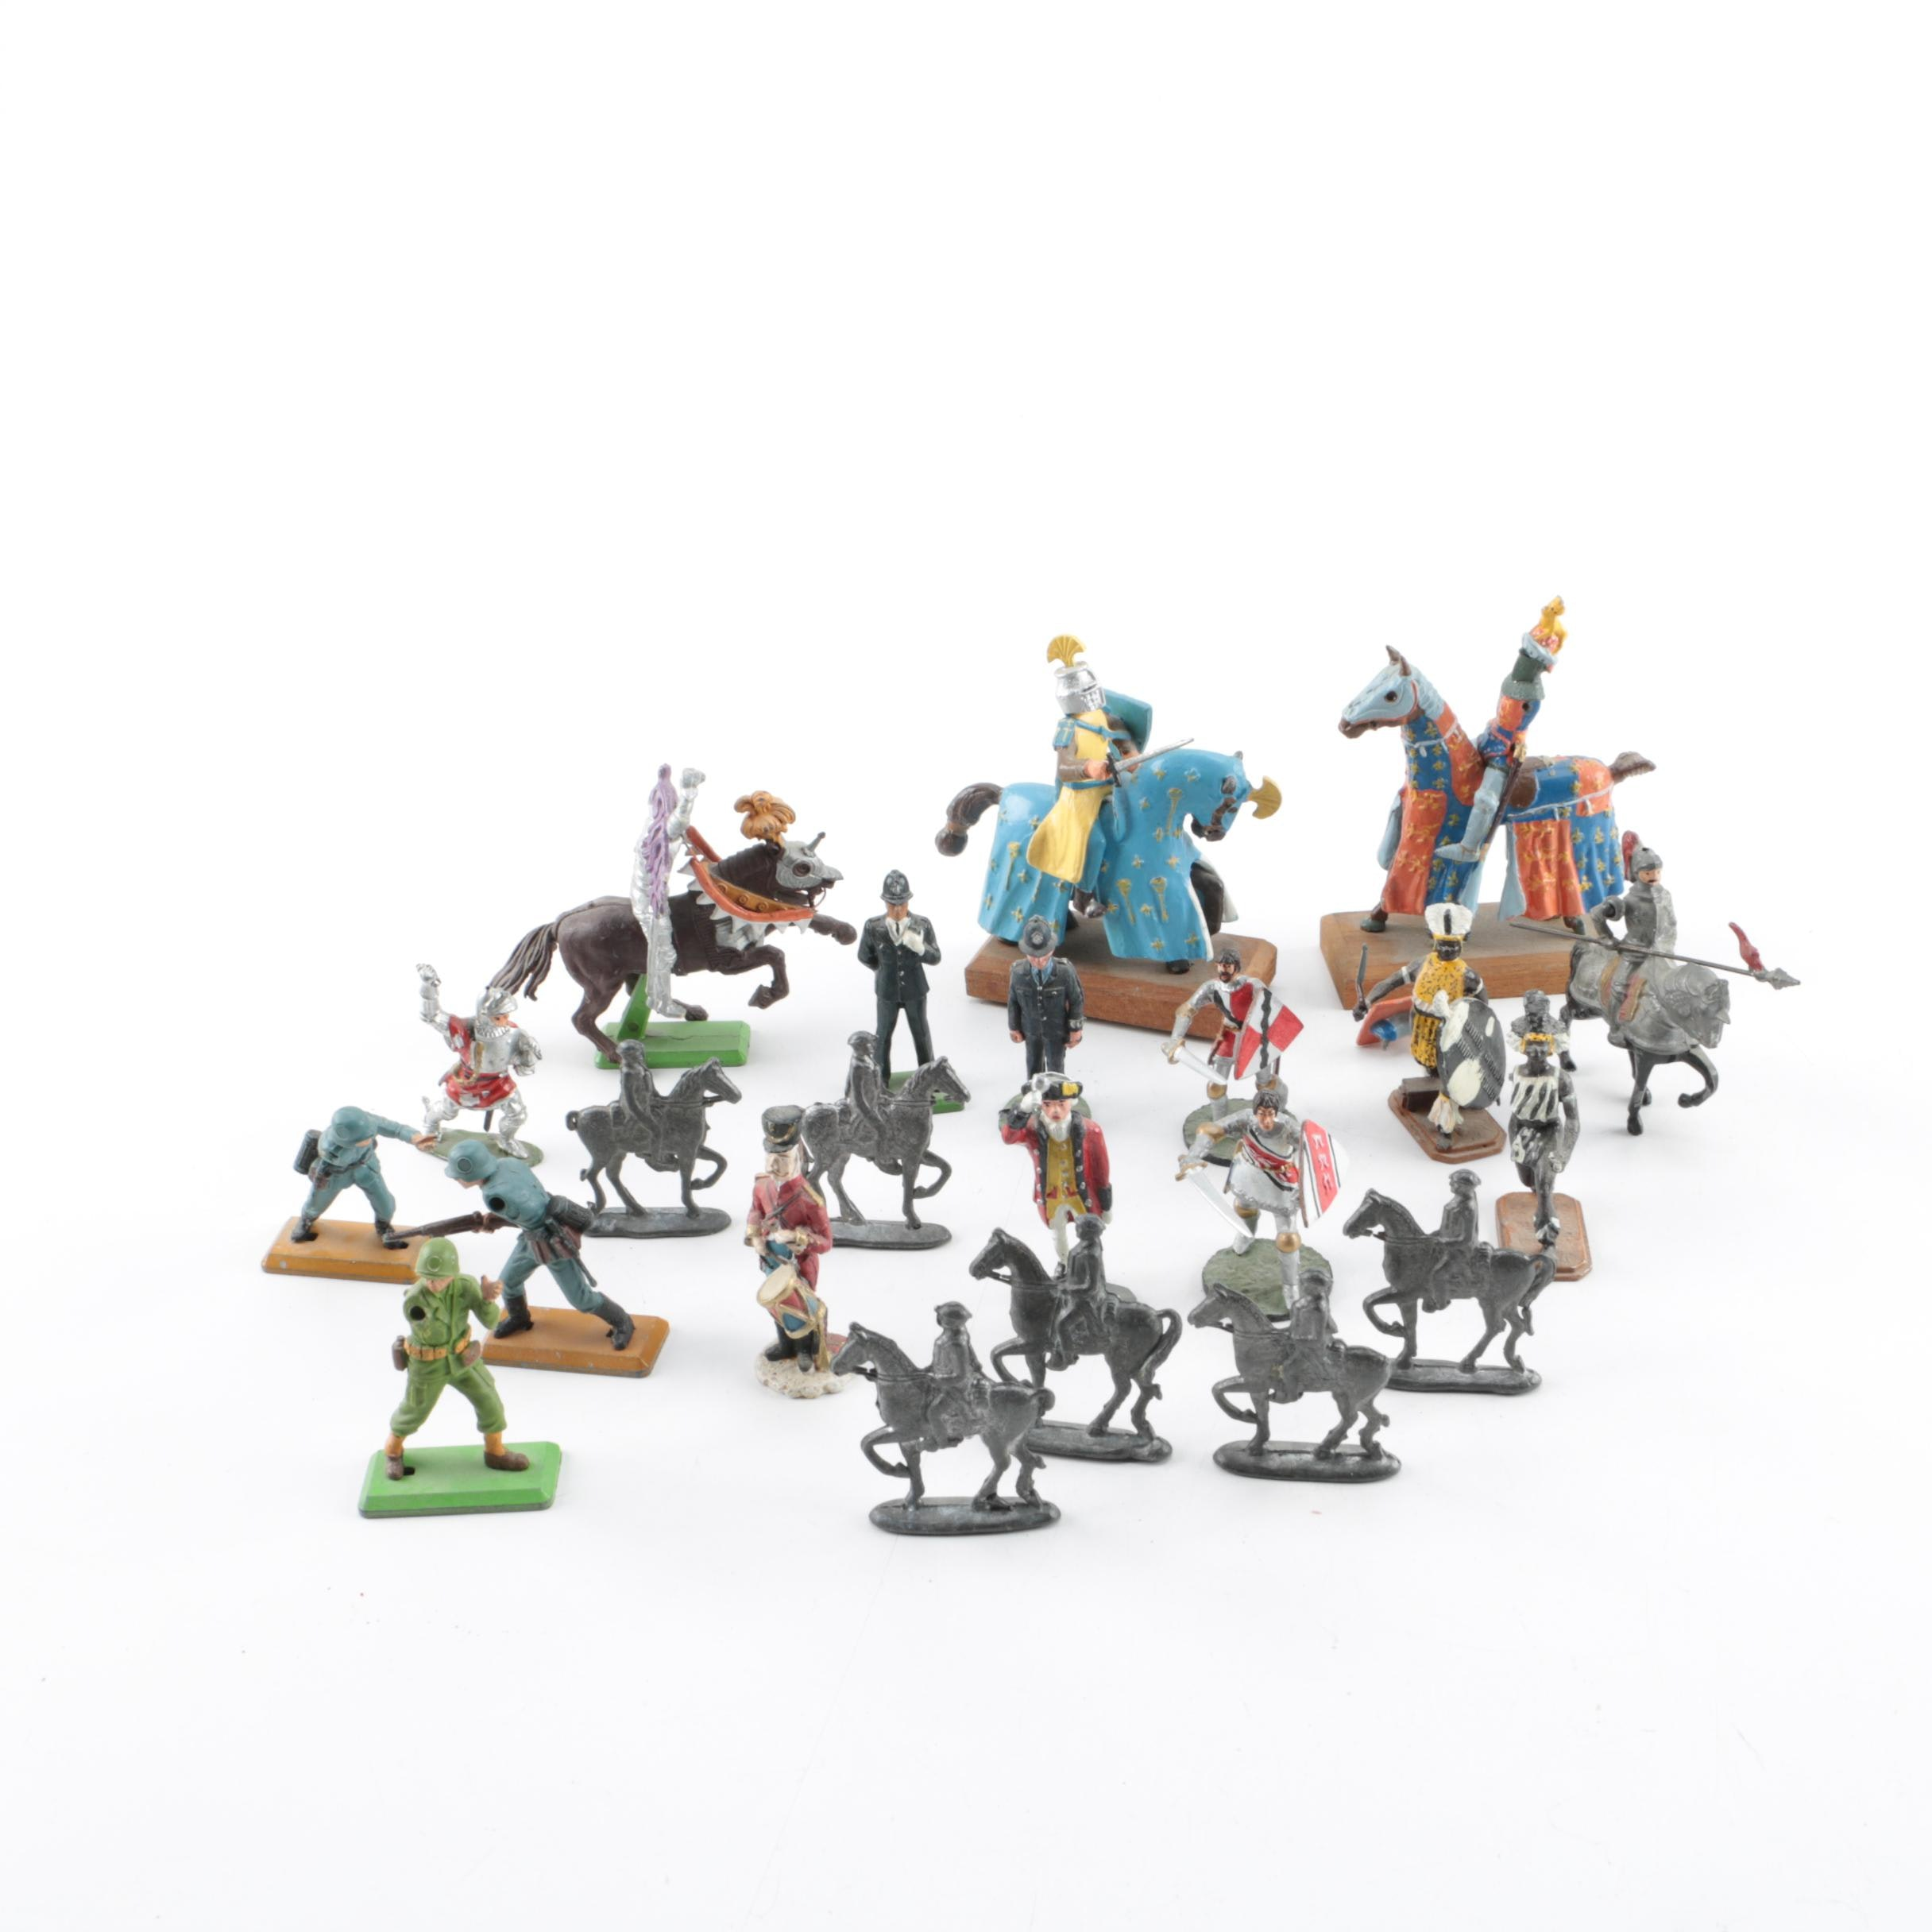 Assorted Metal and Plastic Toy Figurines